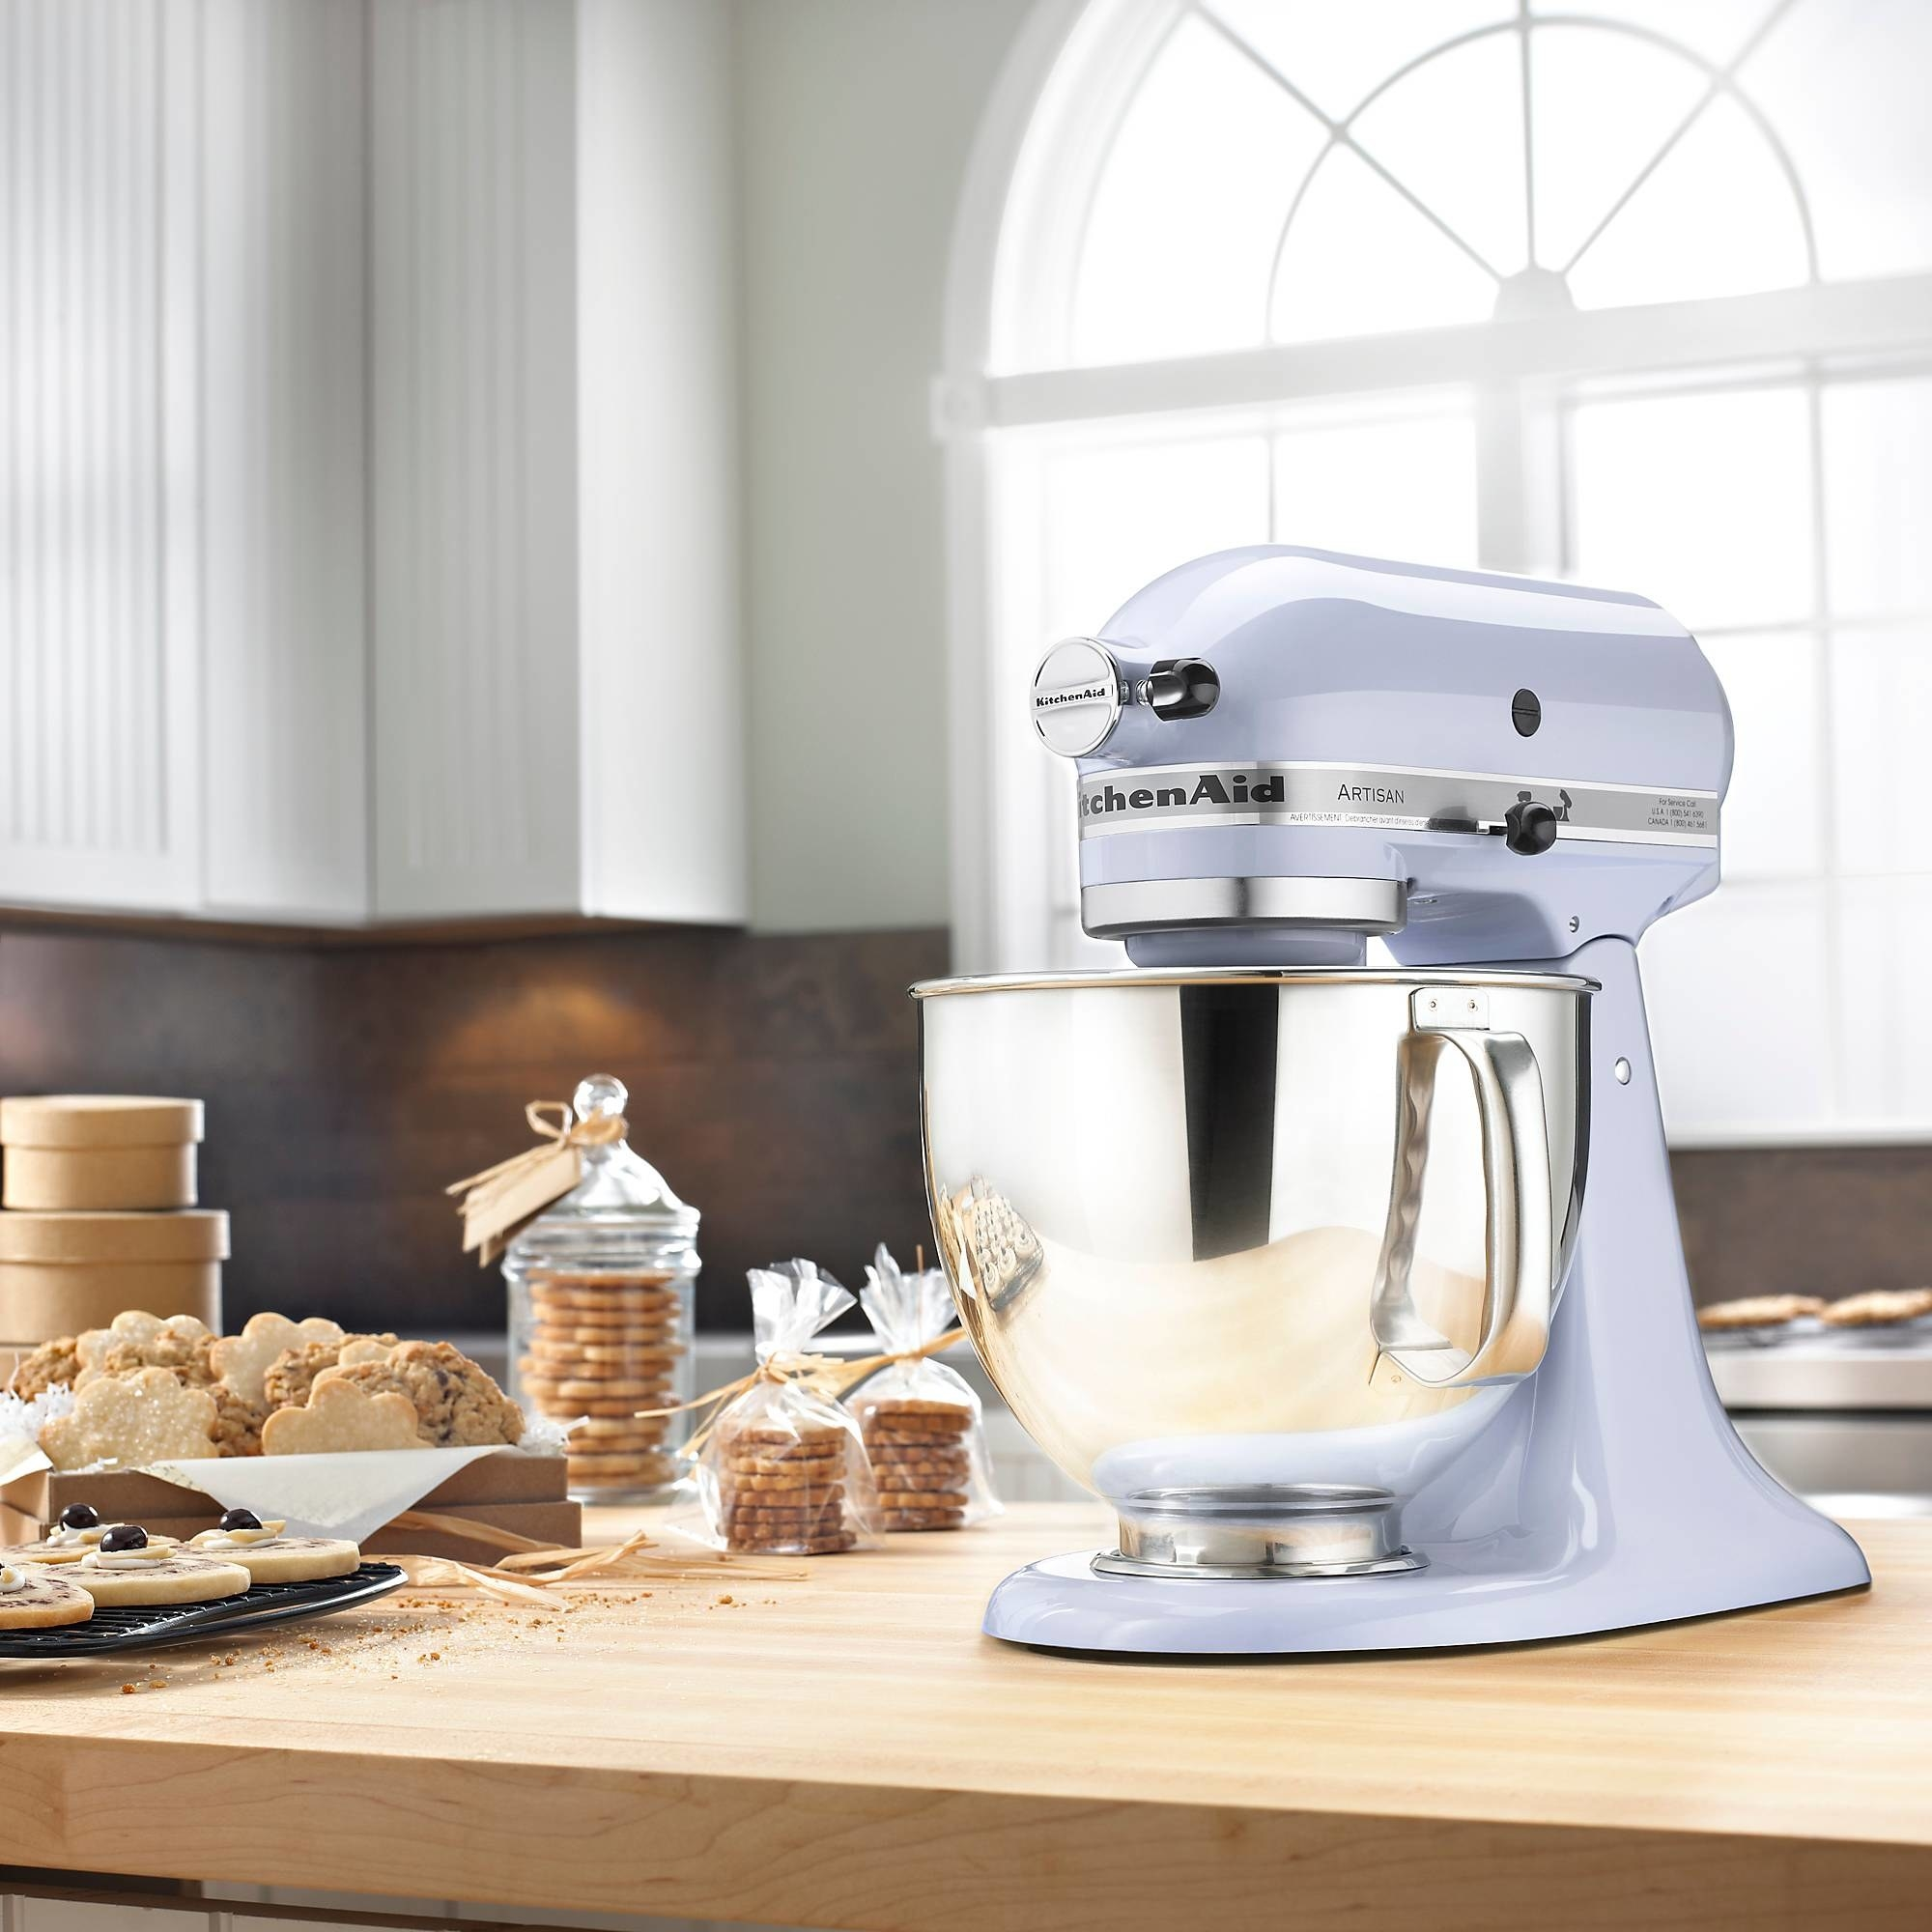 the stand mixer in light blue with large silver bowl on a counter